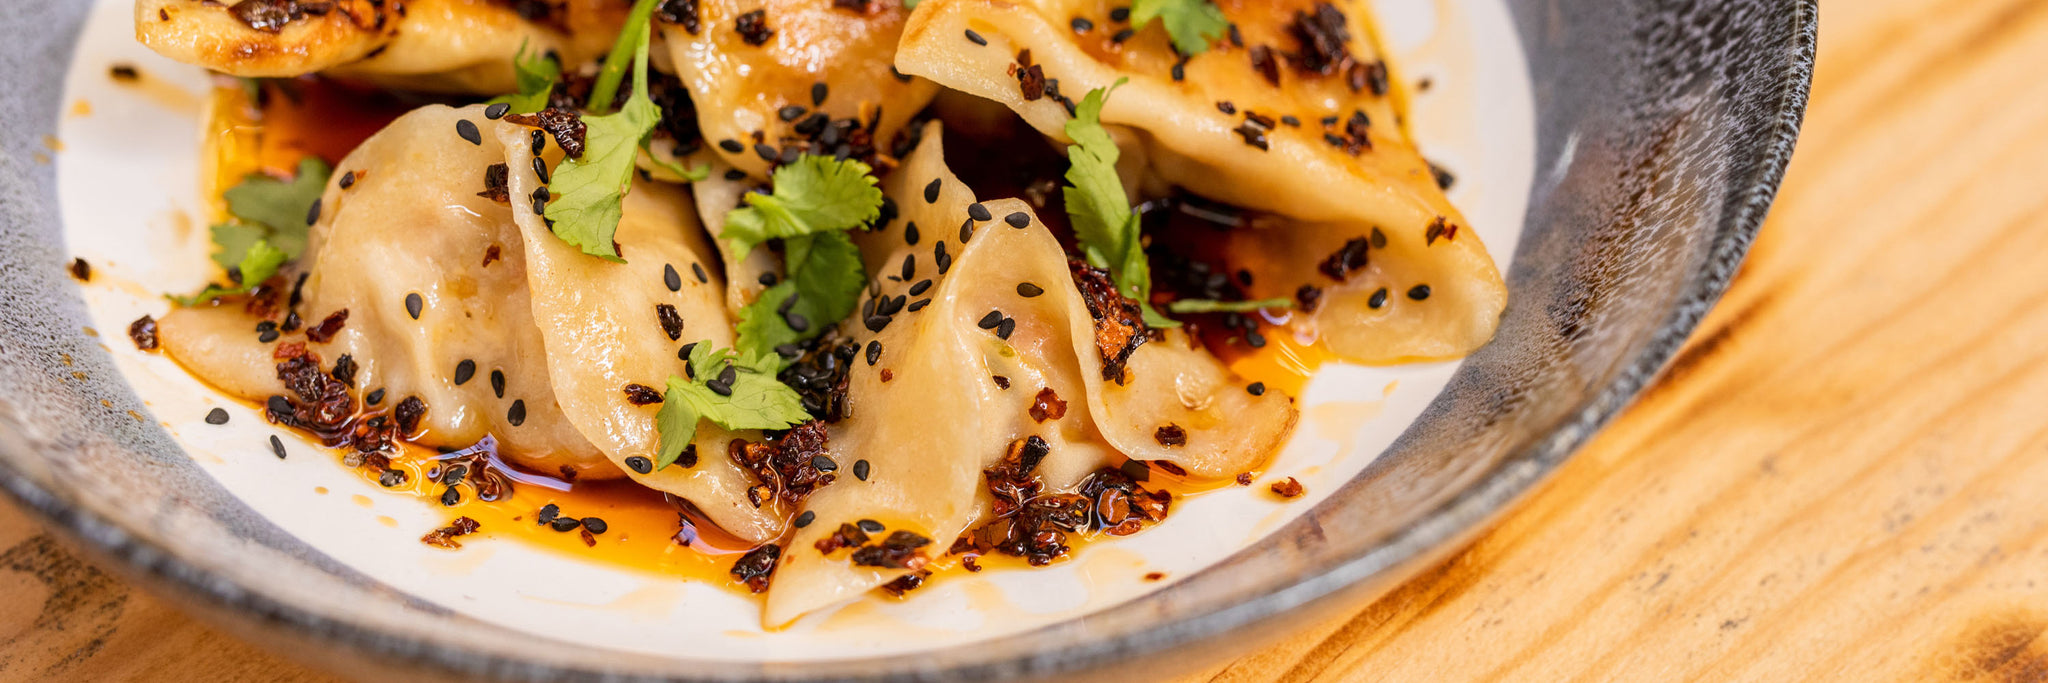 Pan fried pork and kimchi dumplings